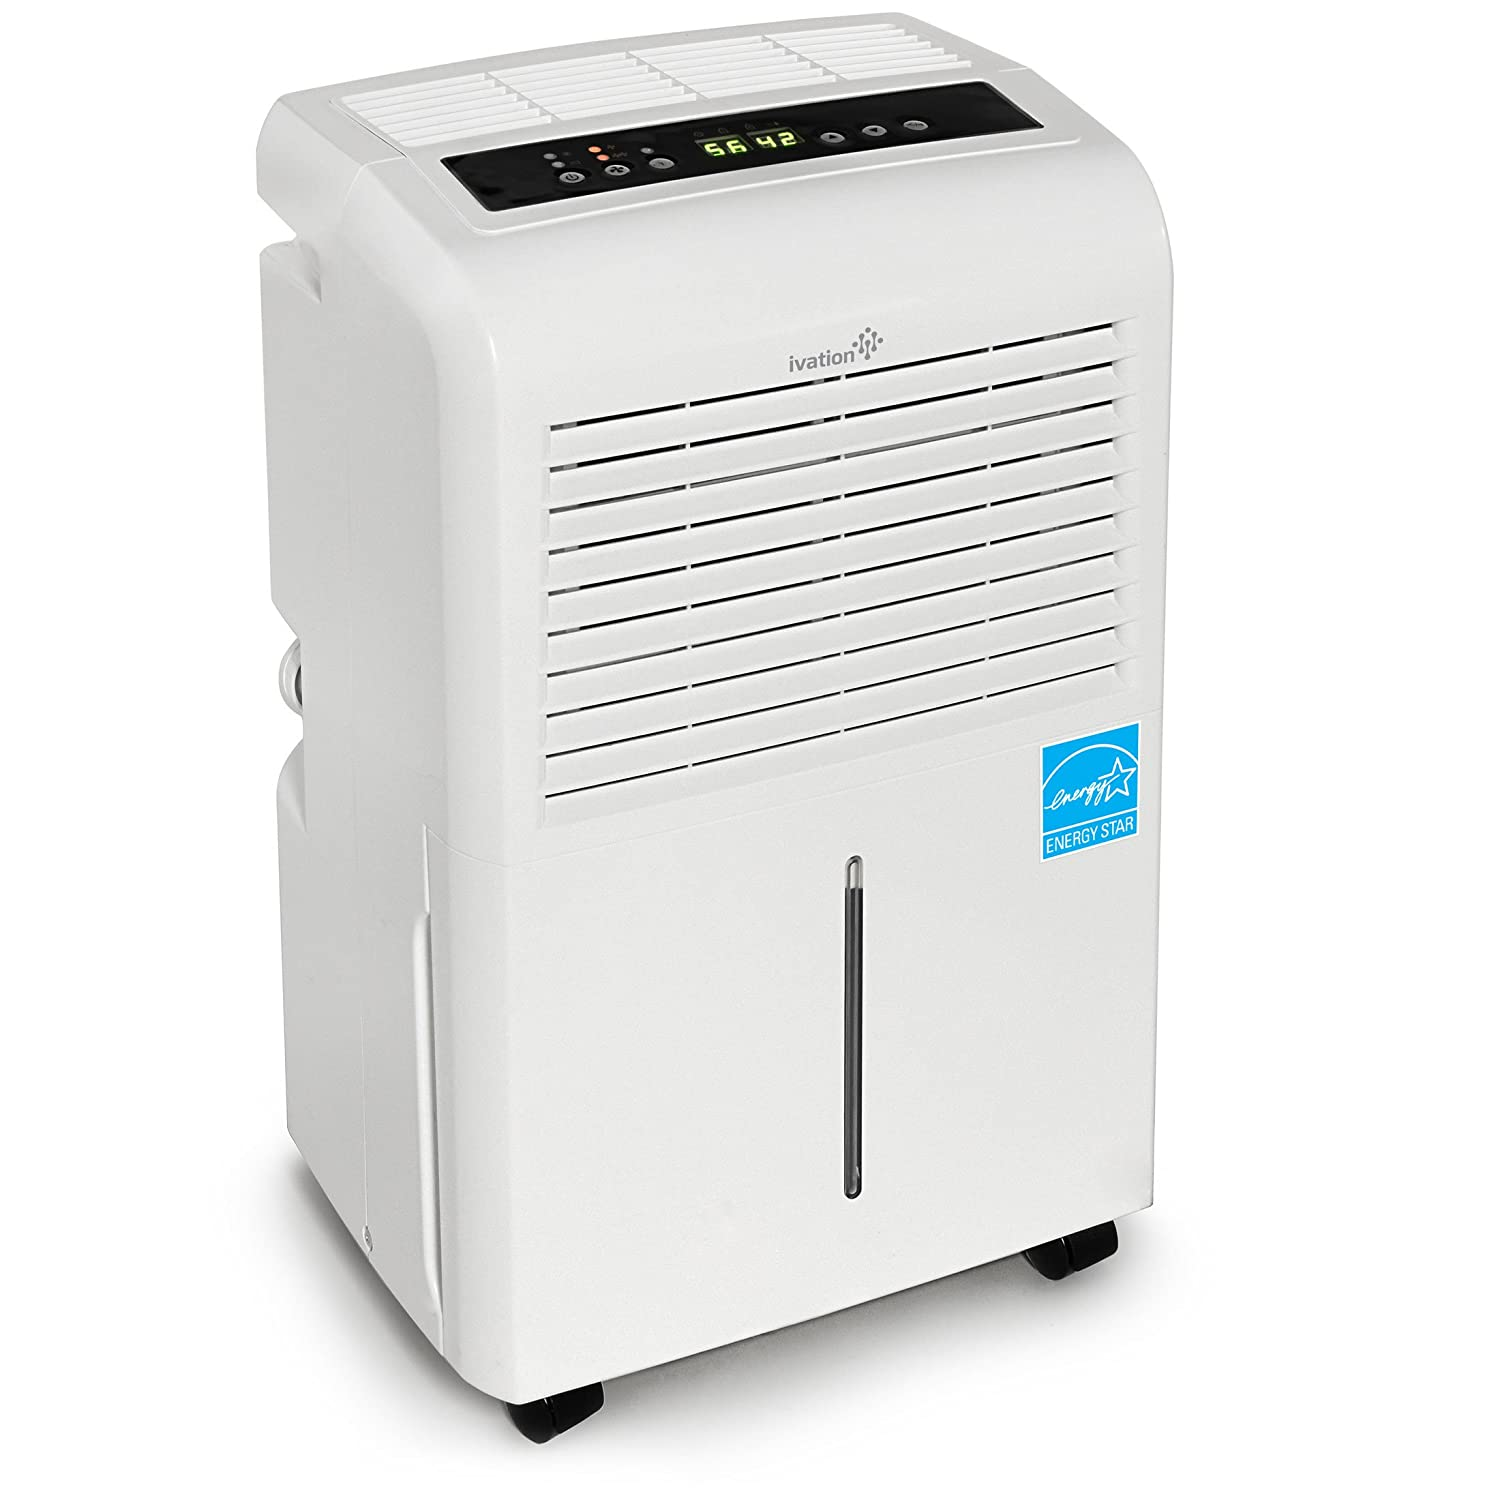 Best Dehumidifier Reviews and Ratings (Updated July. 2018)